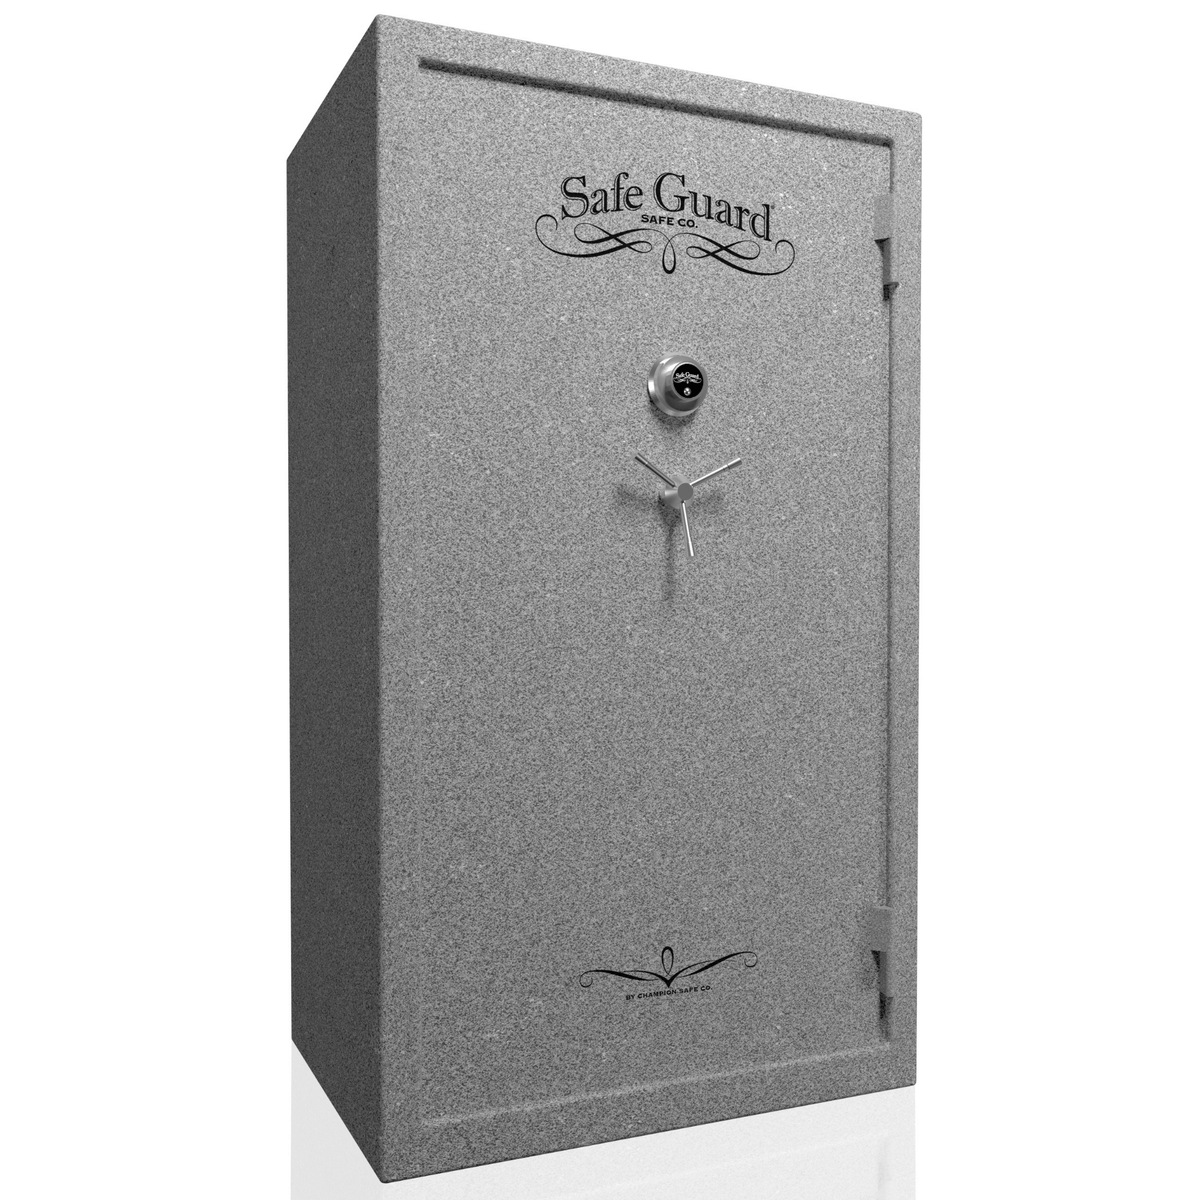 "GR-30 | 60 Minute Fire Protection | Granite Textured | Mechanical Dial | Dimensions: 60"" (H) x 34"" (W) x 24.5"" (D)"